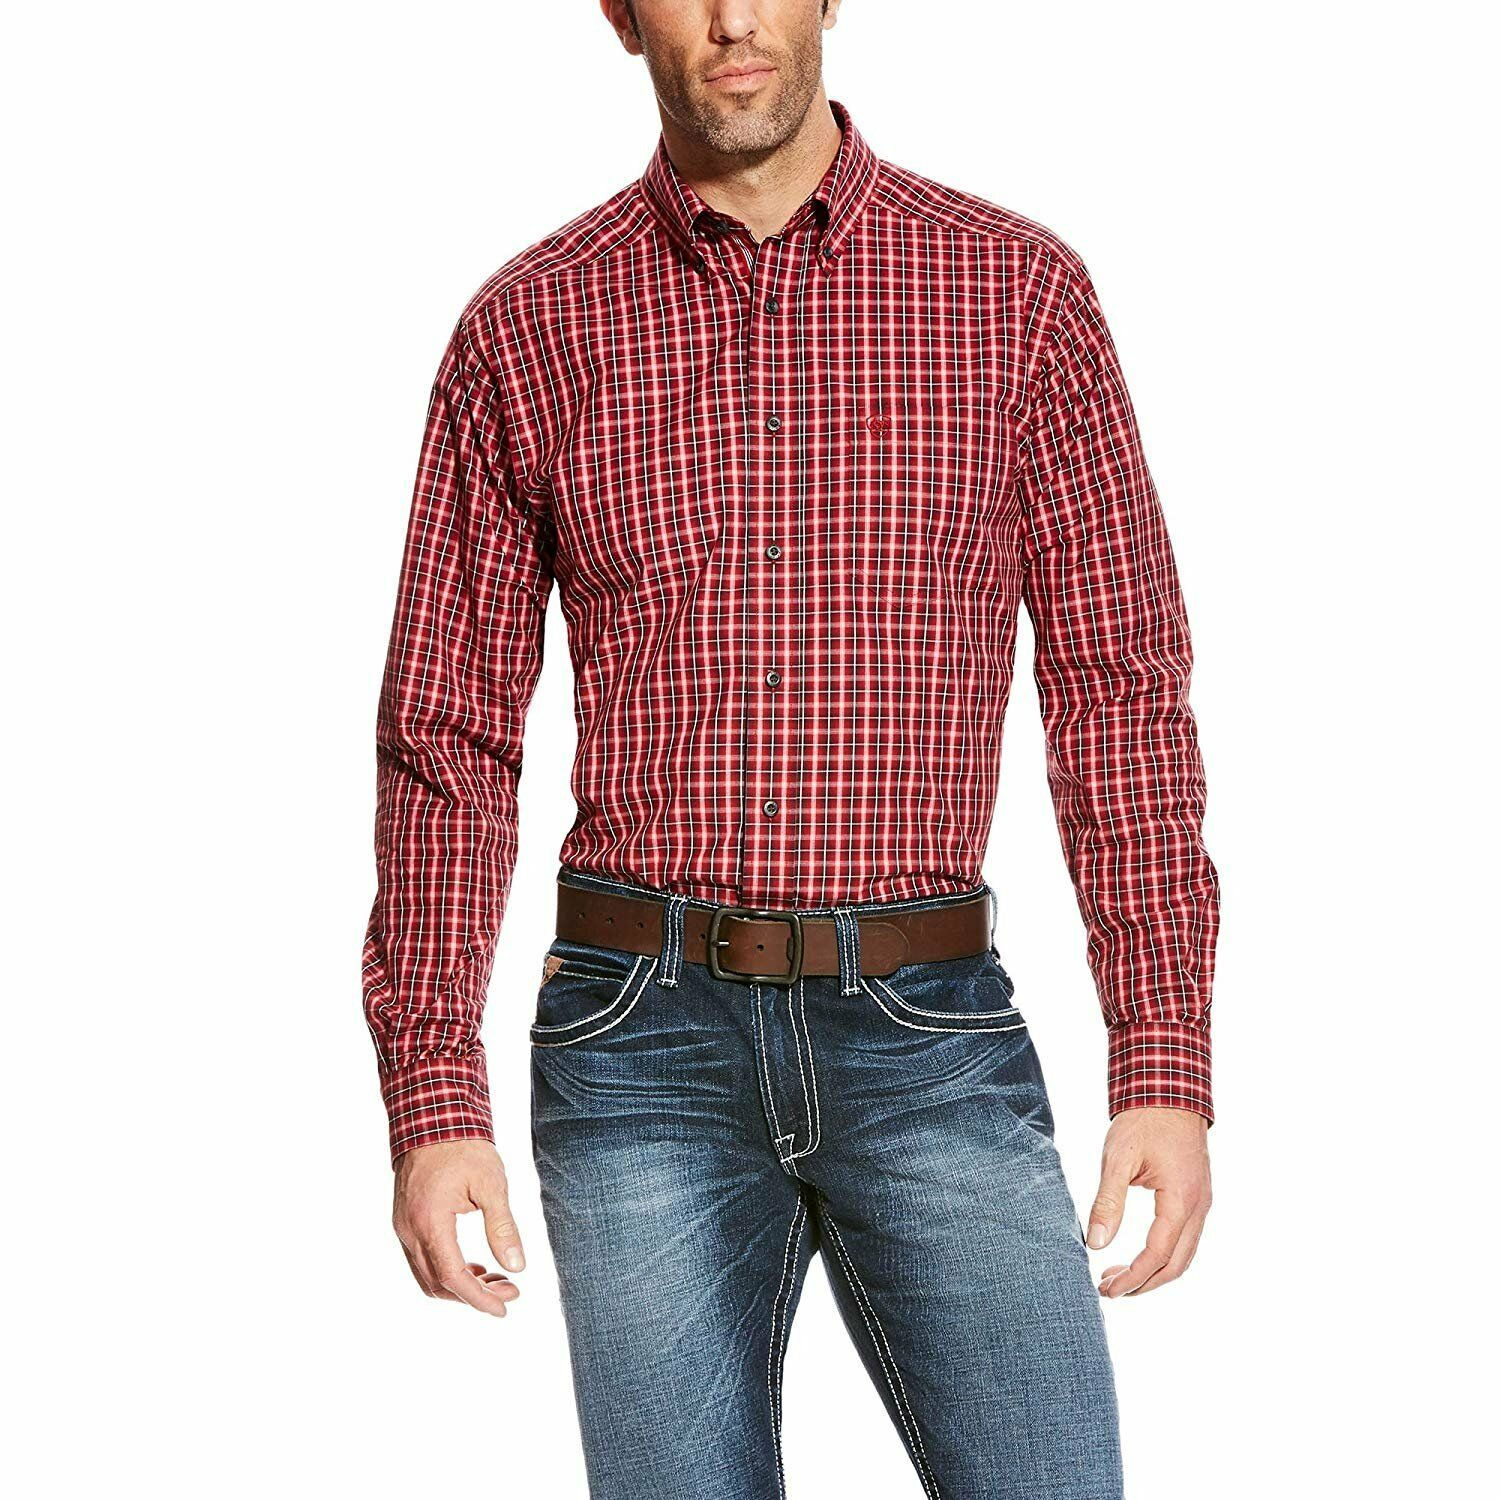 Ariat R Uomo Benton Fitted Shirt XL R Ariat arancia Blaze f09f83